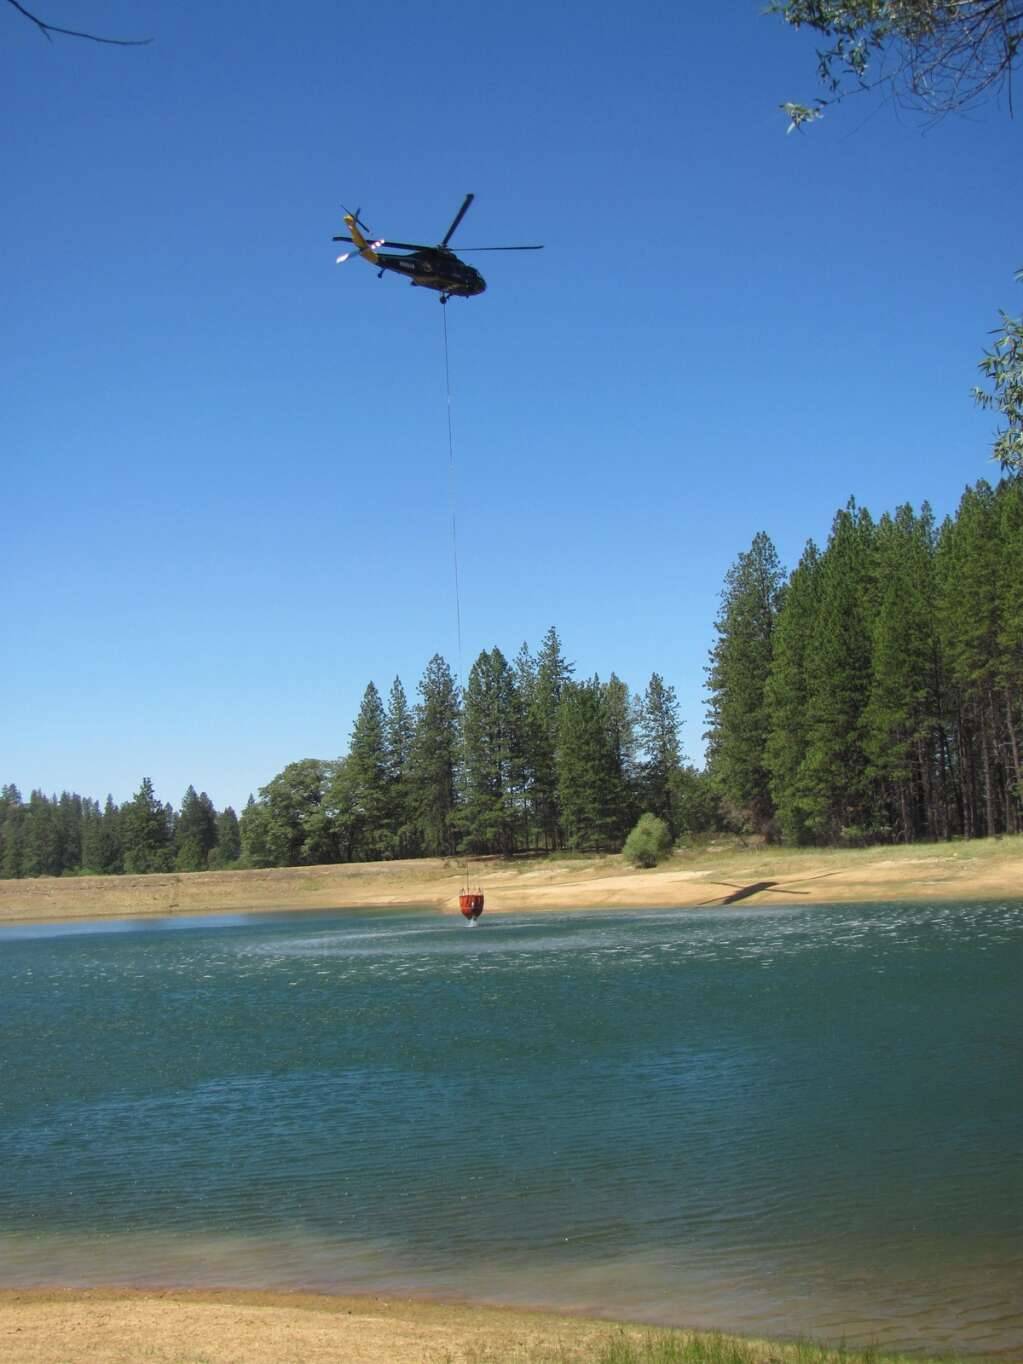 Sharol and Jim Partidos saw smoke rising towards Pleasant Valley Road and Highway 49 at 10:30 a.m. Monday, July 12. At 10:45 a.m., they saw a helicopter taking water out of Pine Grove Reservoir to fight the Pleasant Fire. Thank you firefighters! | Submitted by Jim Partidos